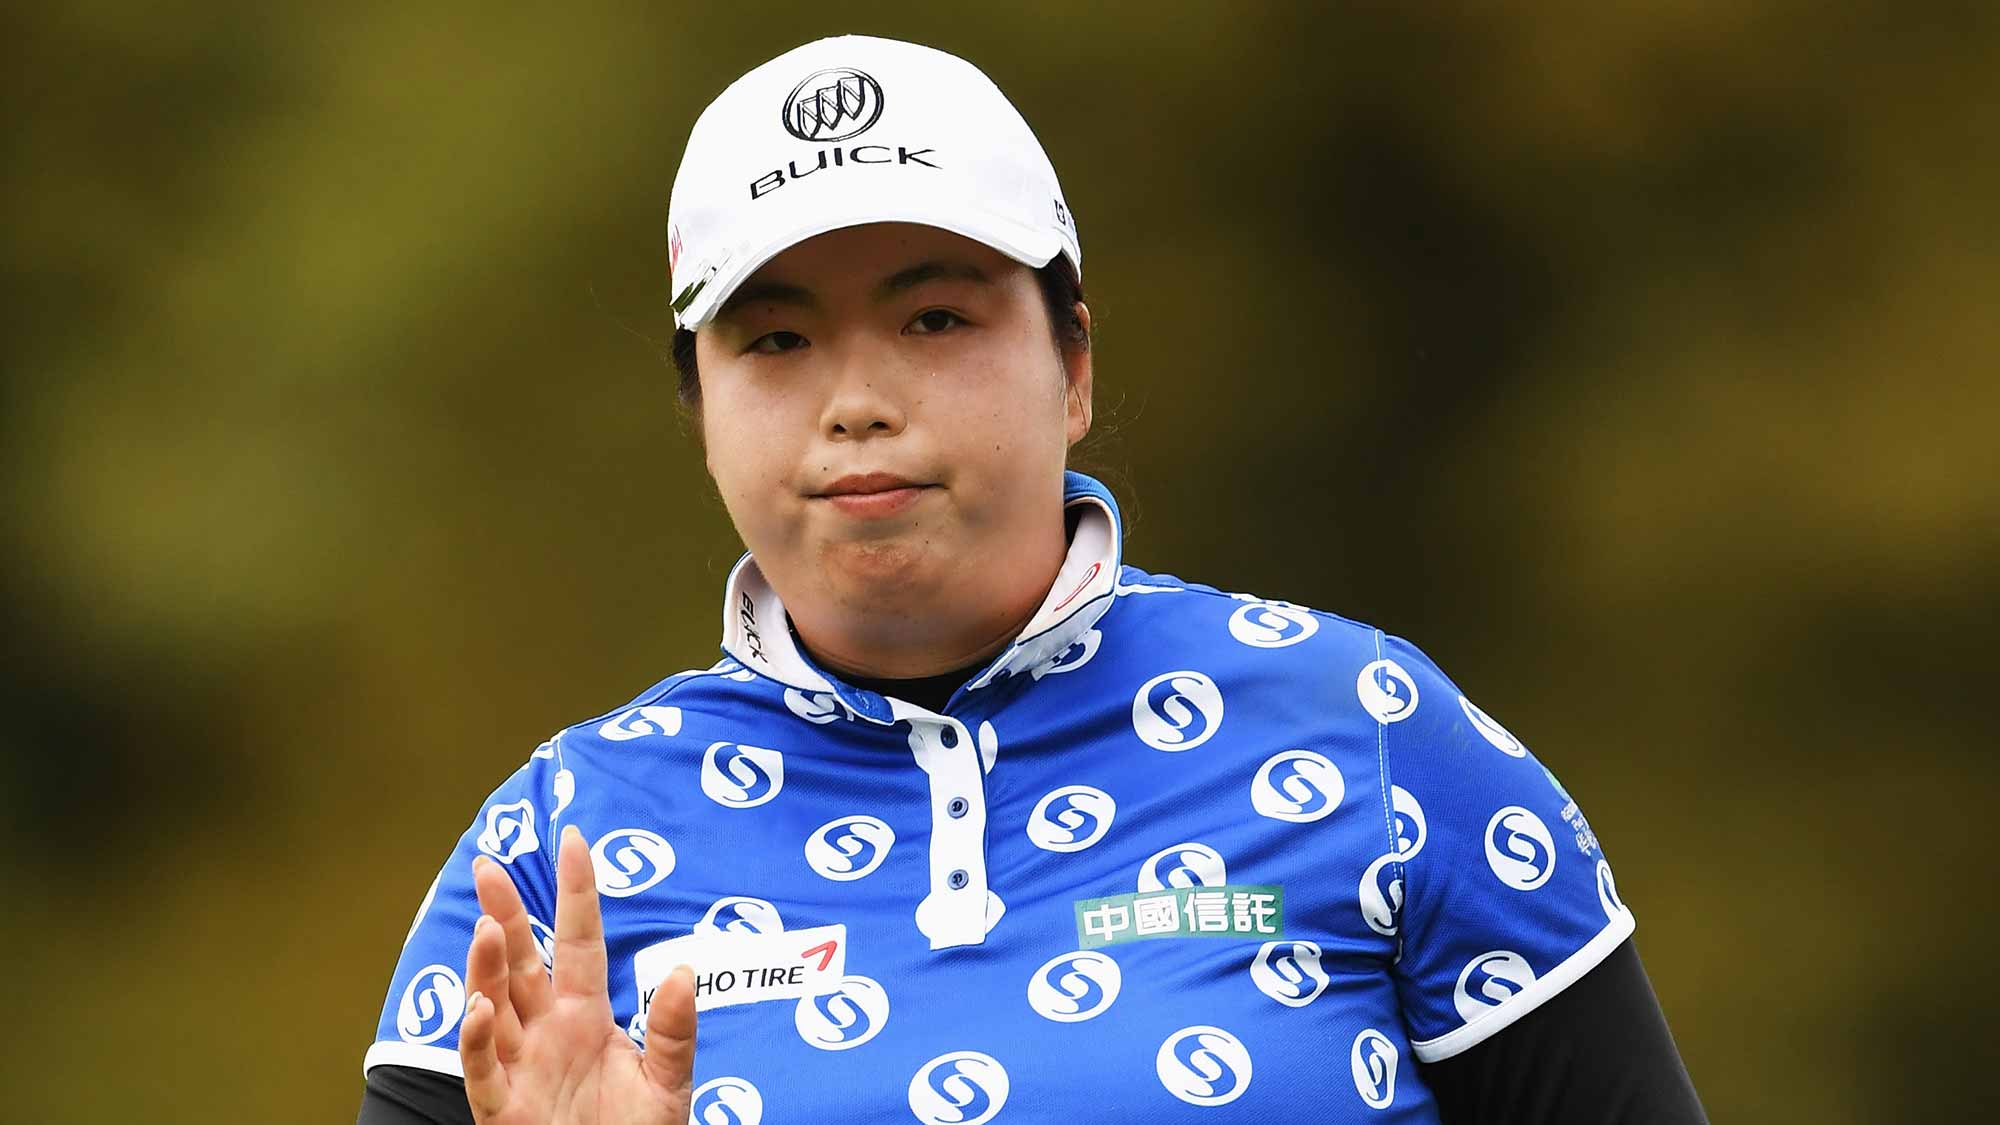 Shanshan Feng of China reacts to a putt during the second round of The Evian Championship